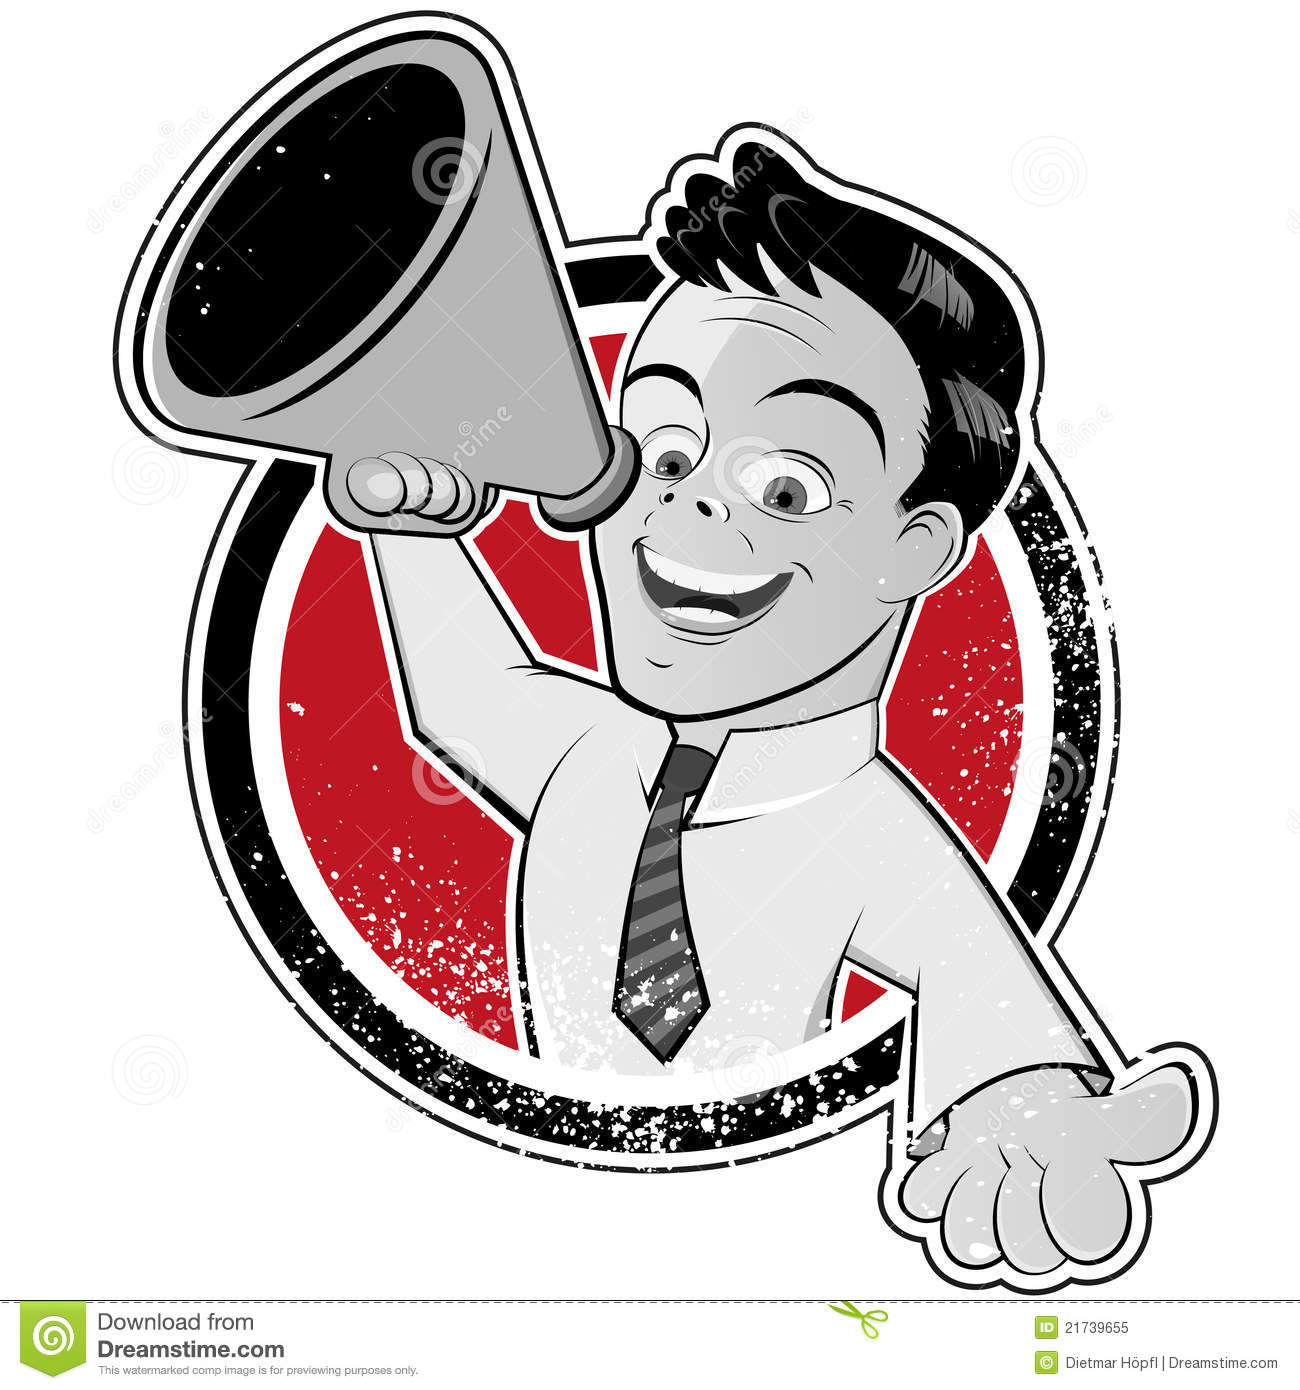 clipart man with megaphone - photo #28